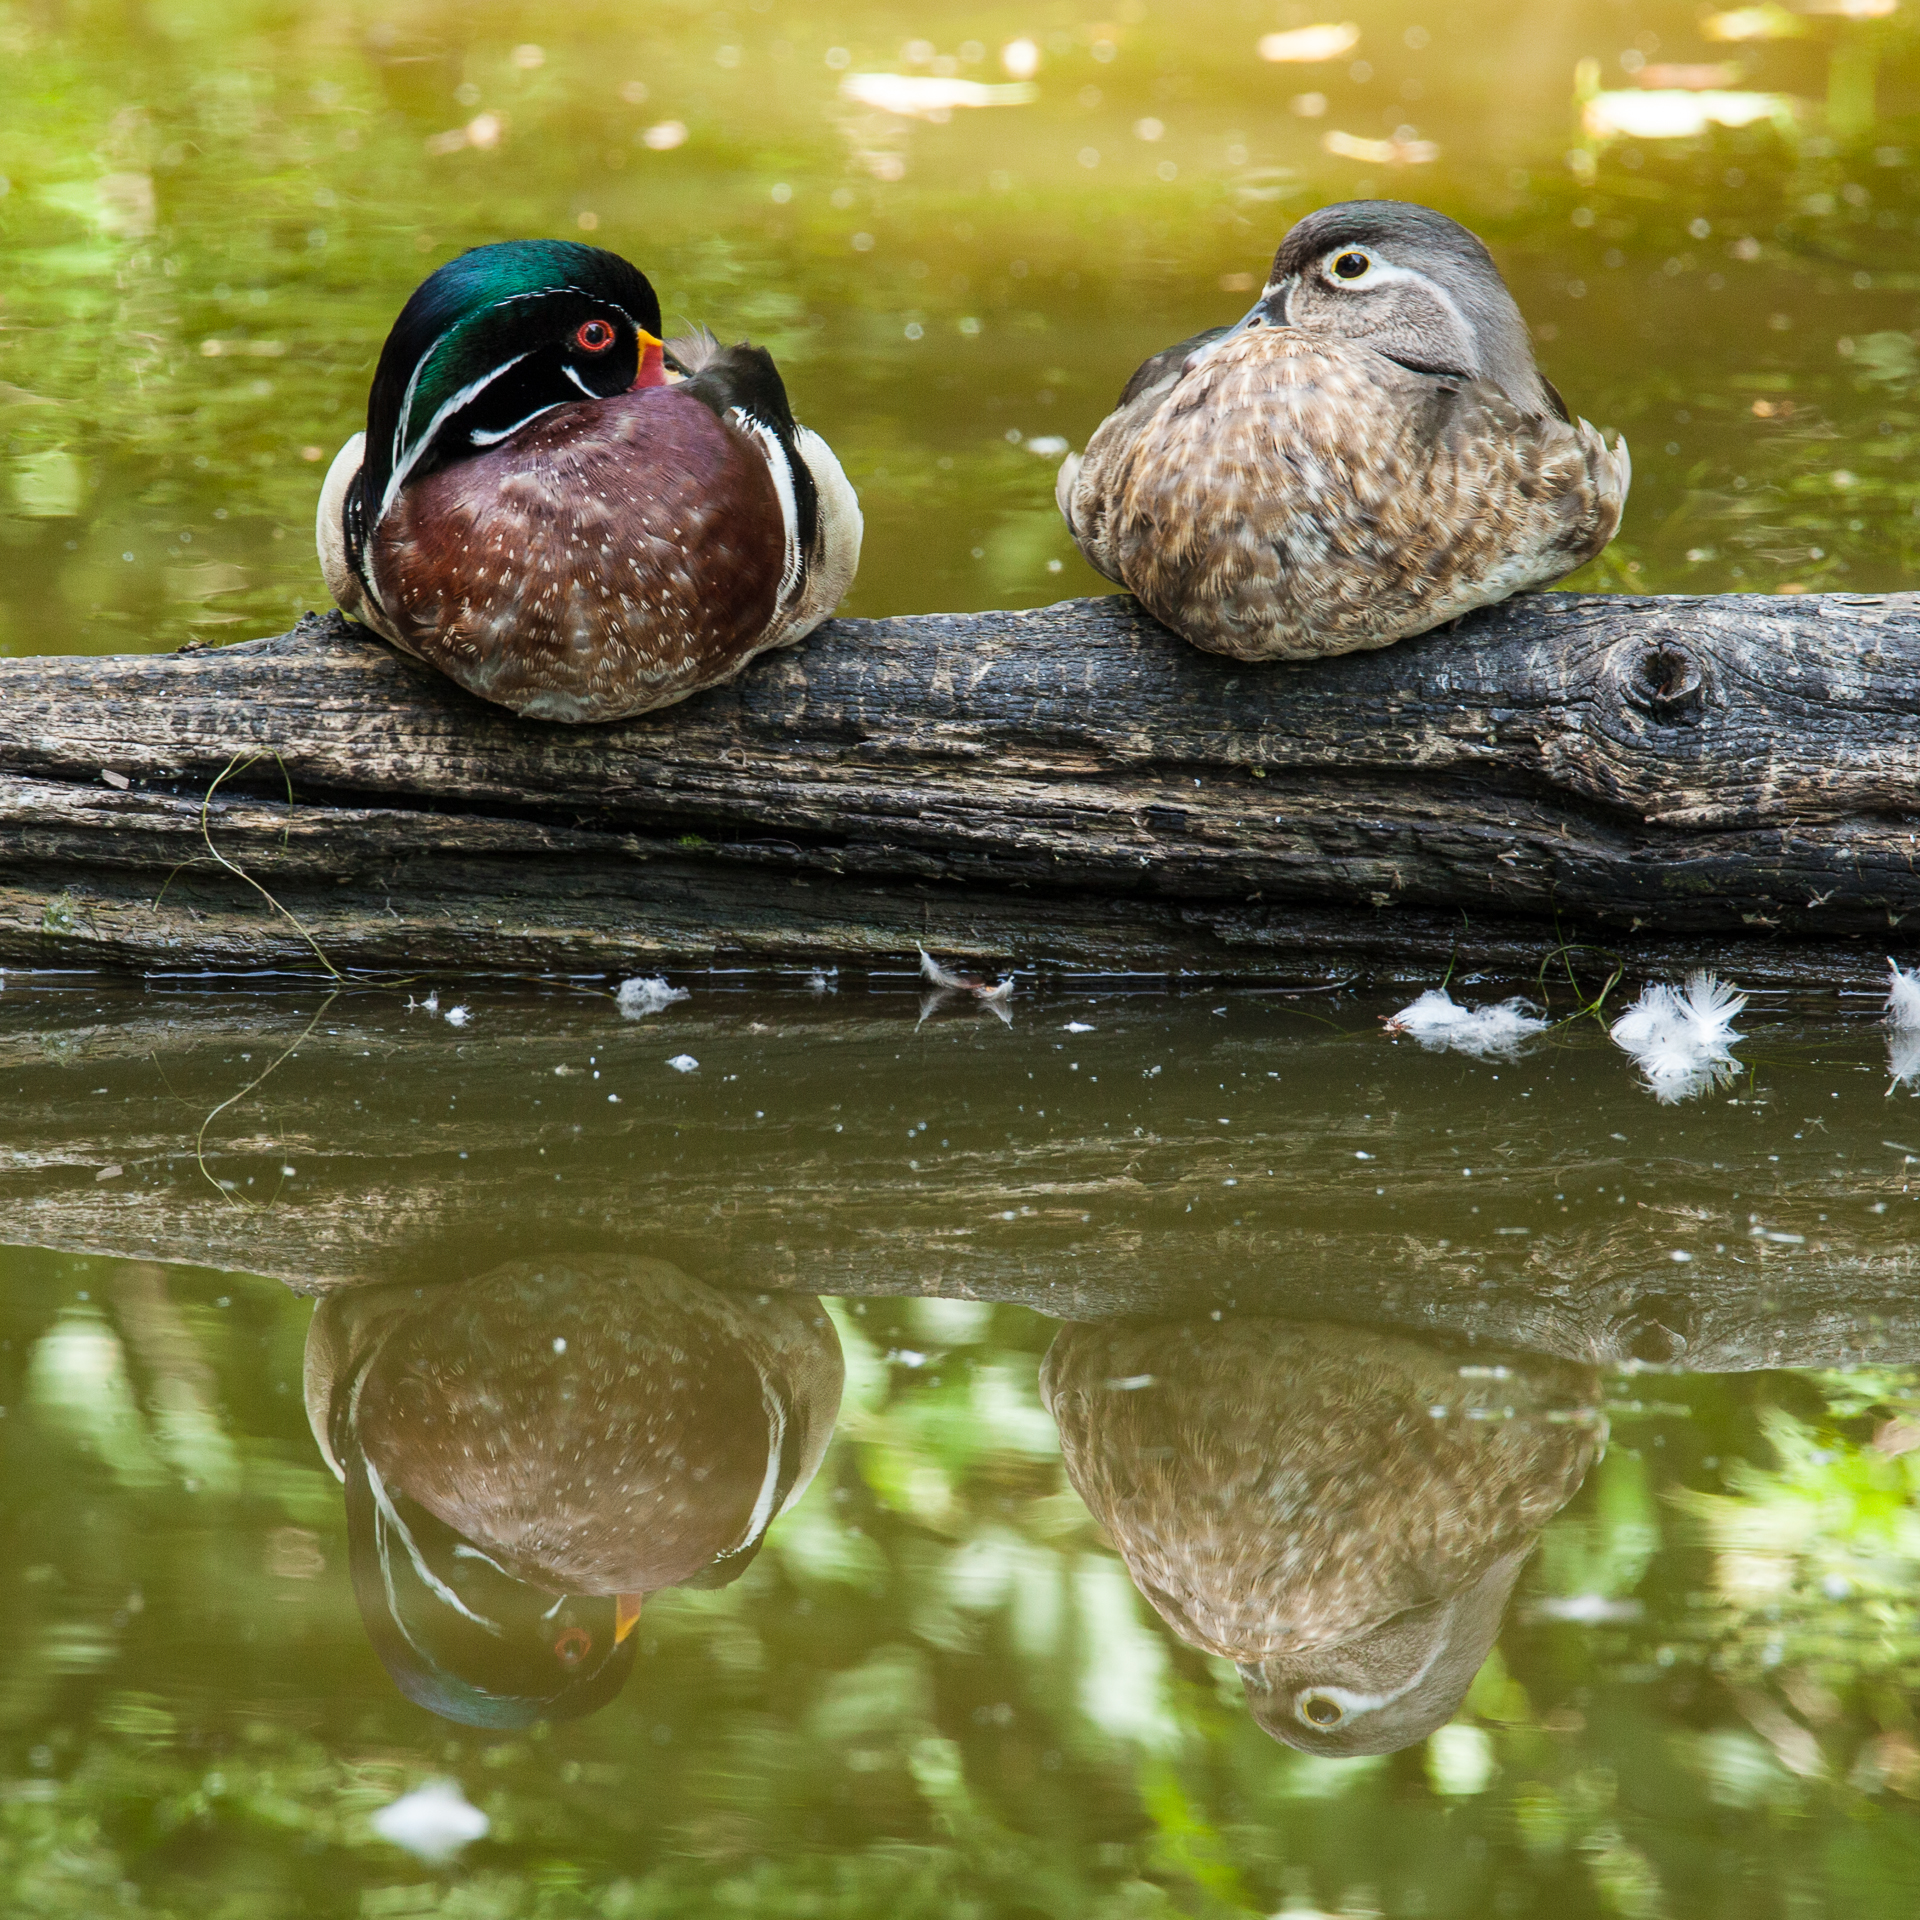 A pair of wood ducks were enjoying the warm afternoon.